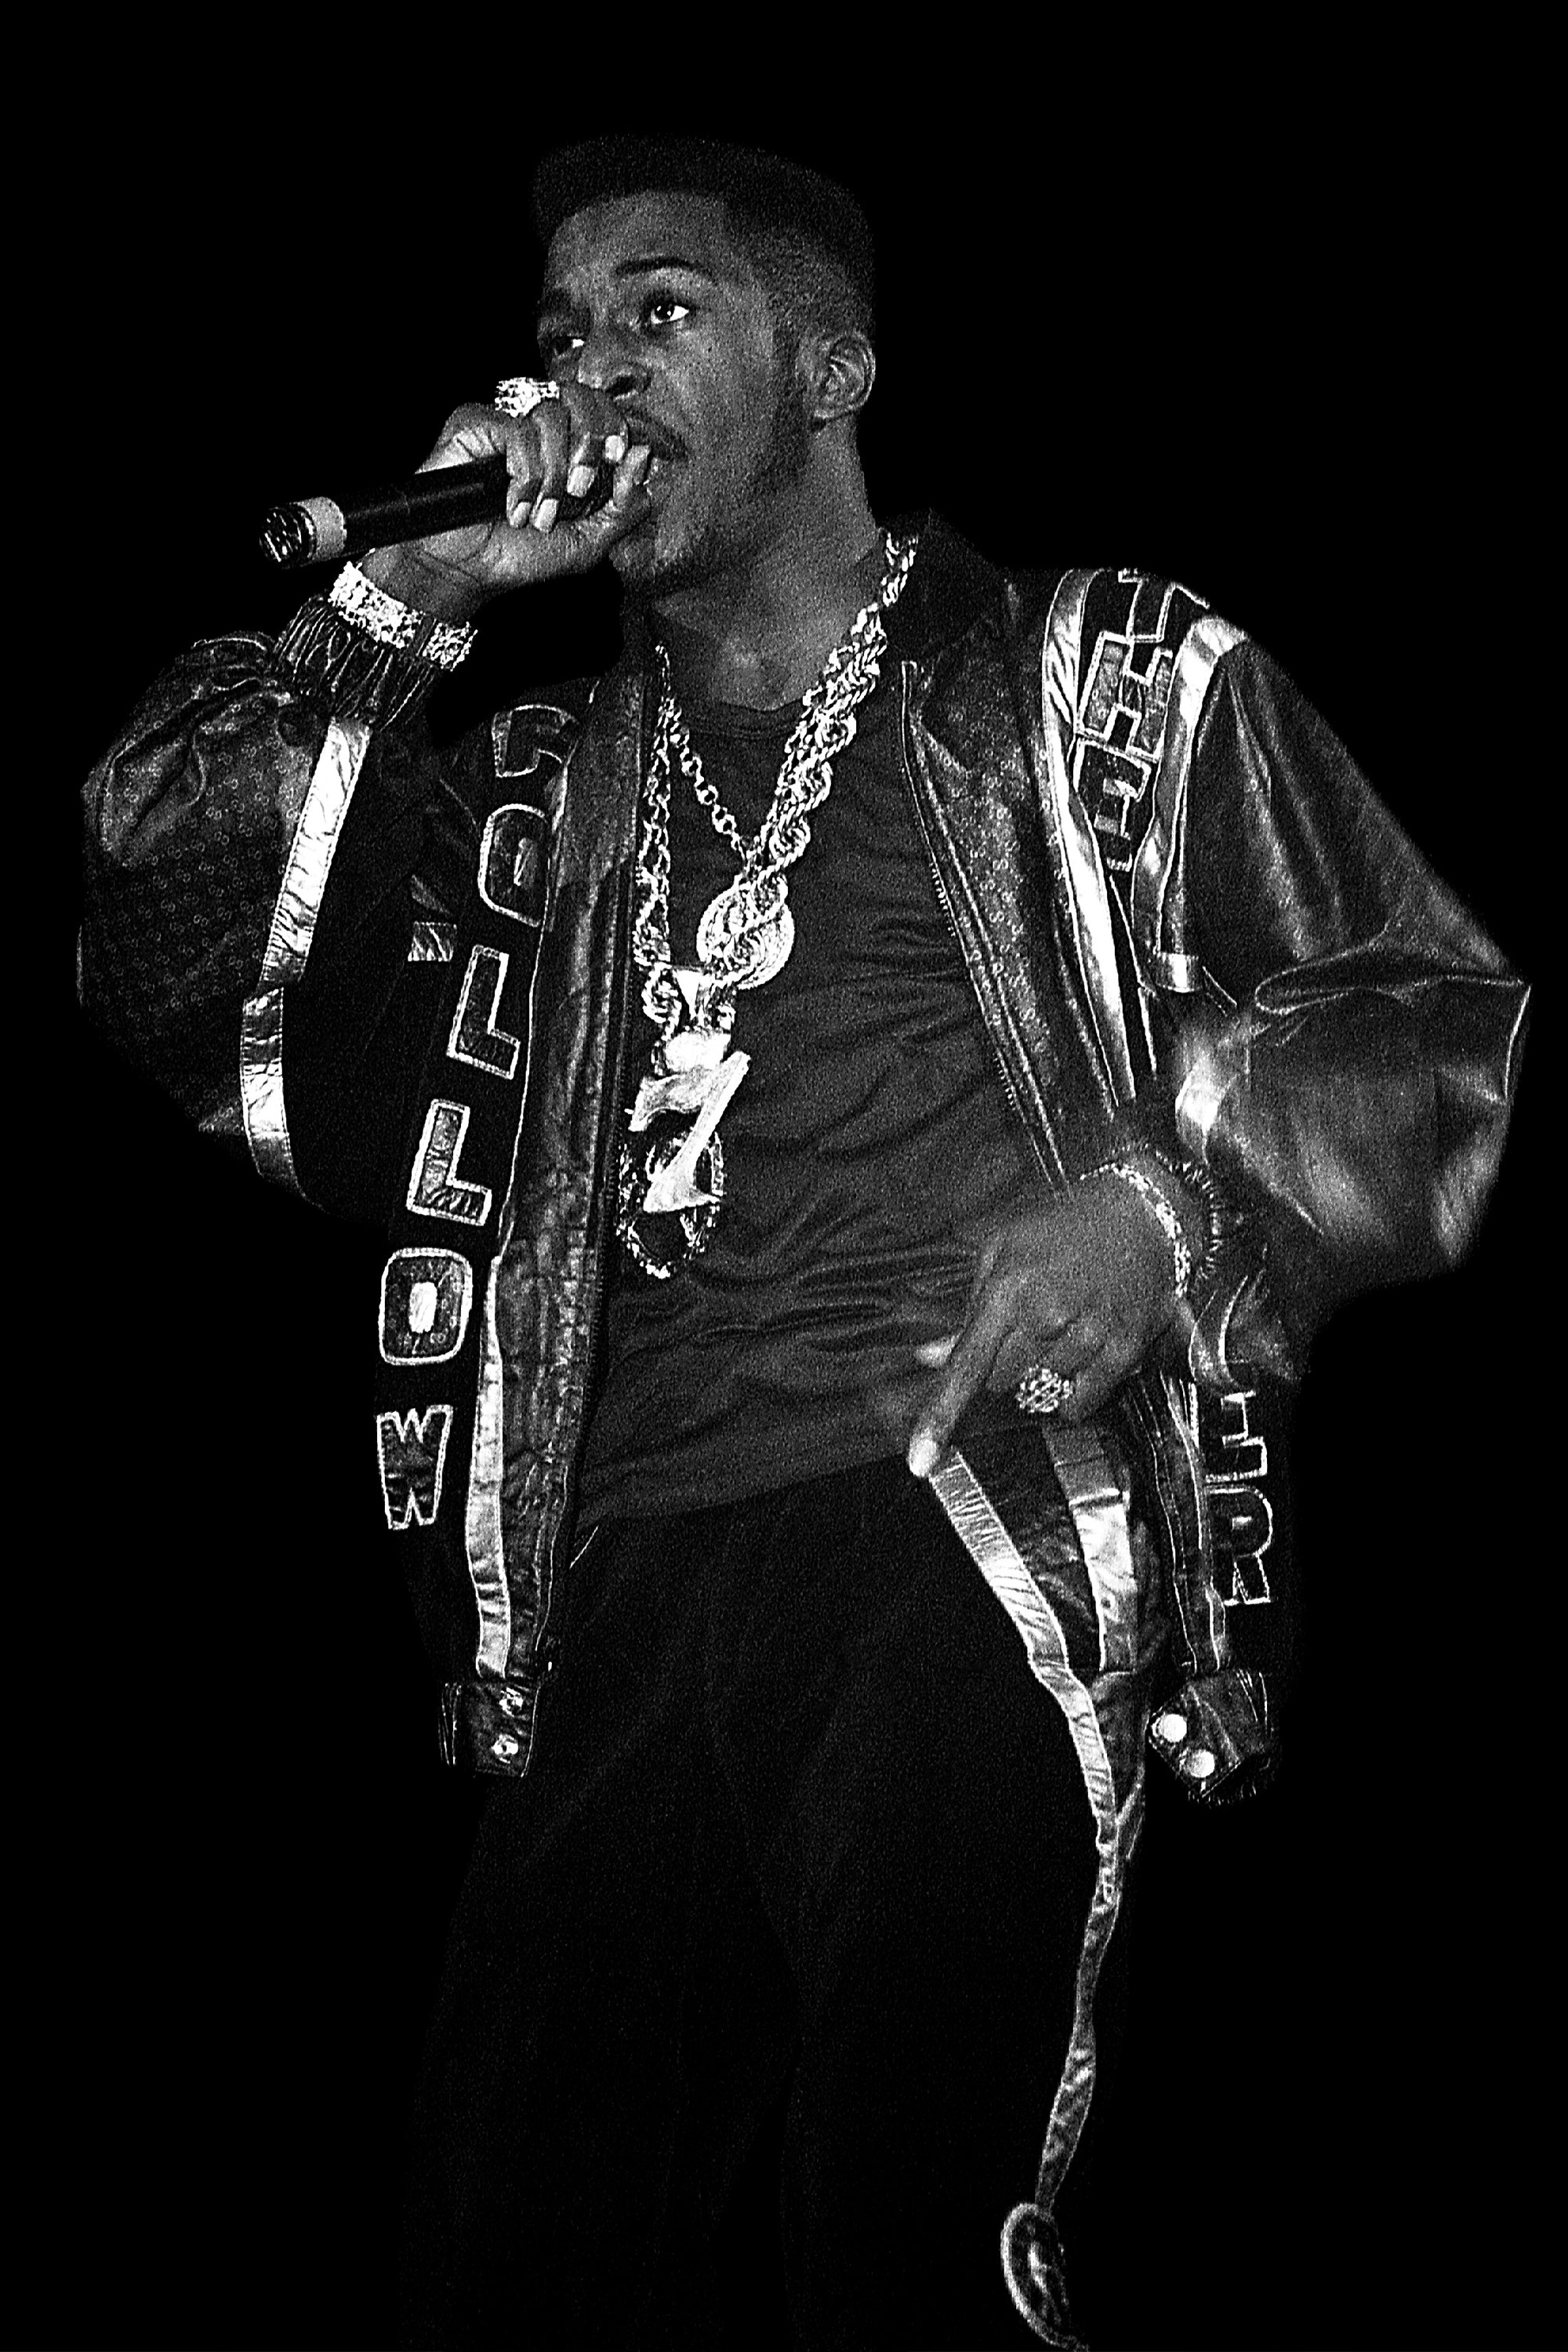 Rakim of Eric B. and Rakim performs at the Mecca Arena in Milwaukee, Wisconsin in August 1988. (Photo By Raymond Boyd/Getty Images)